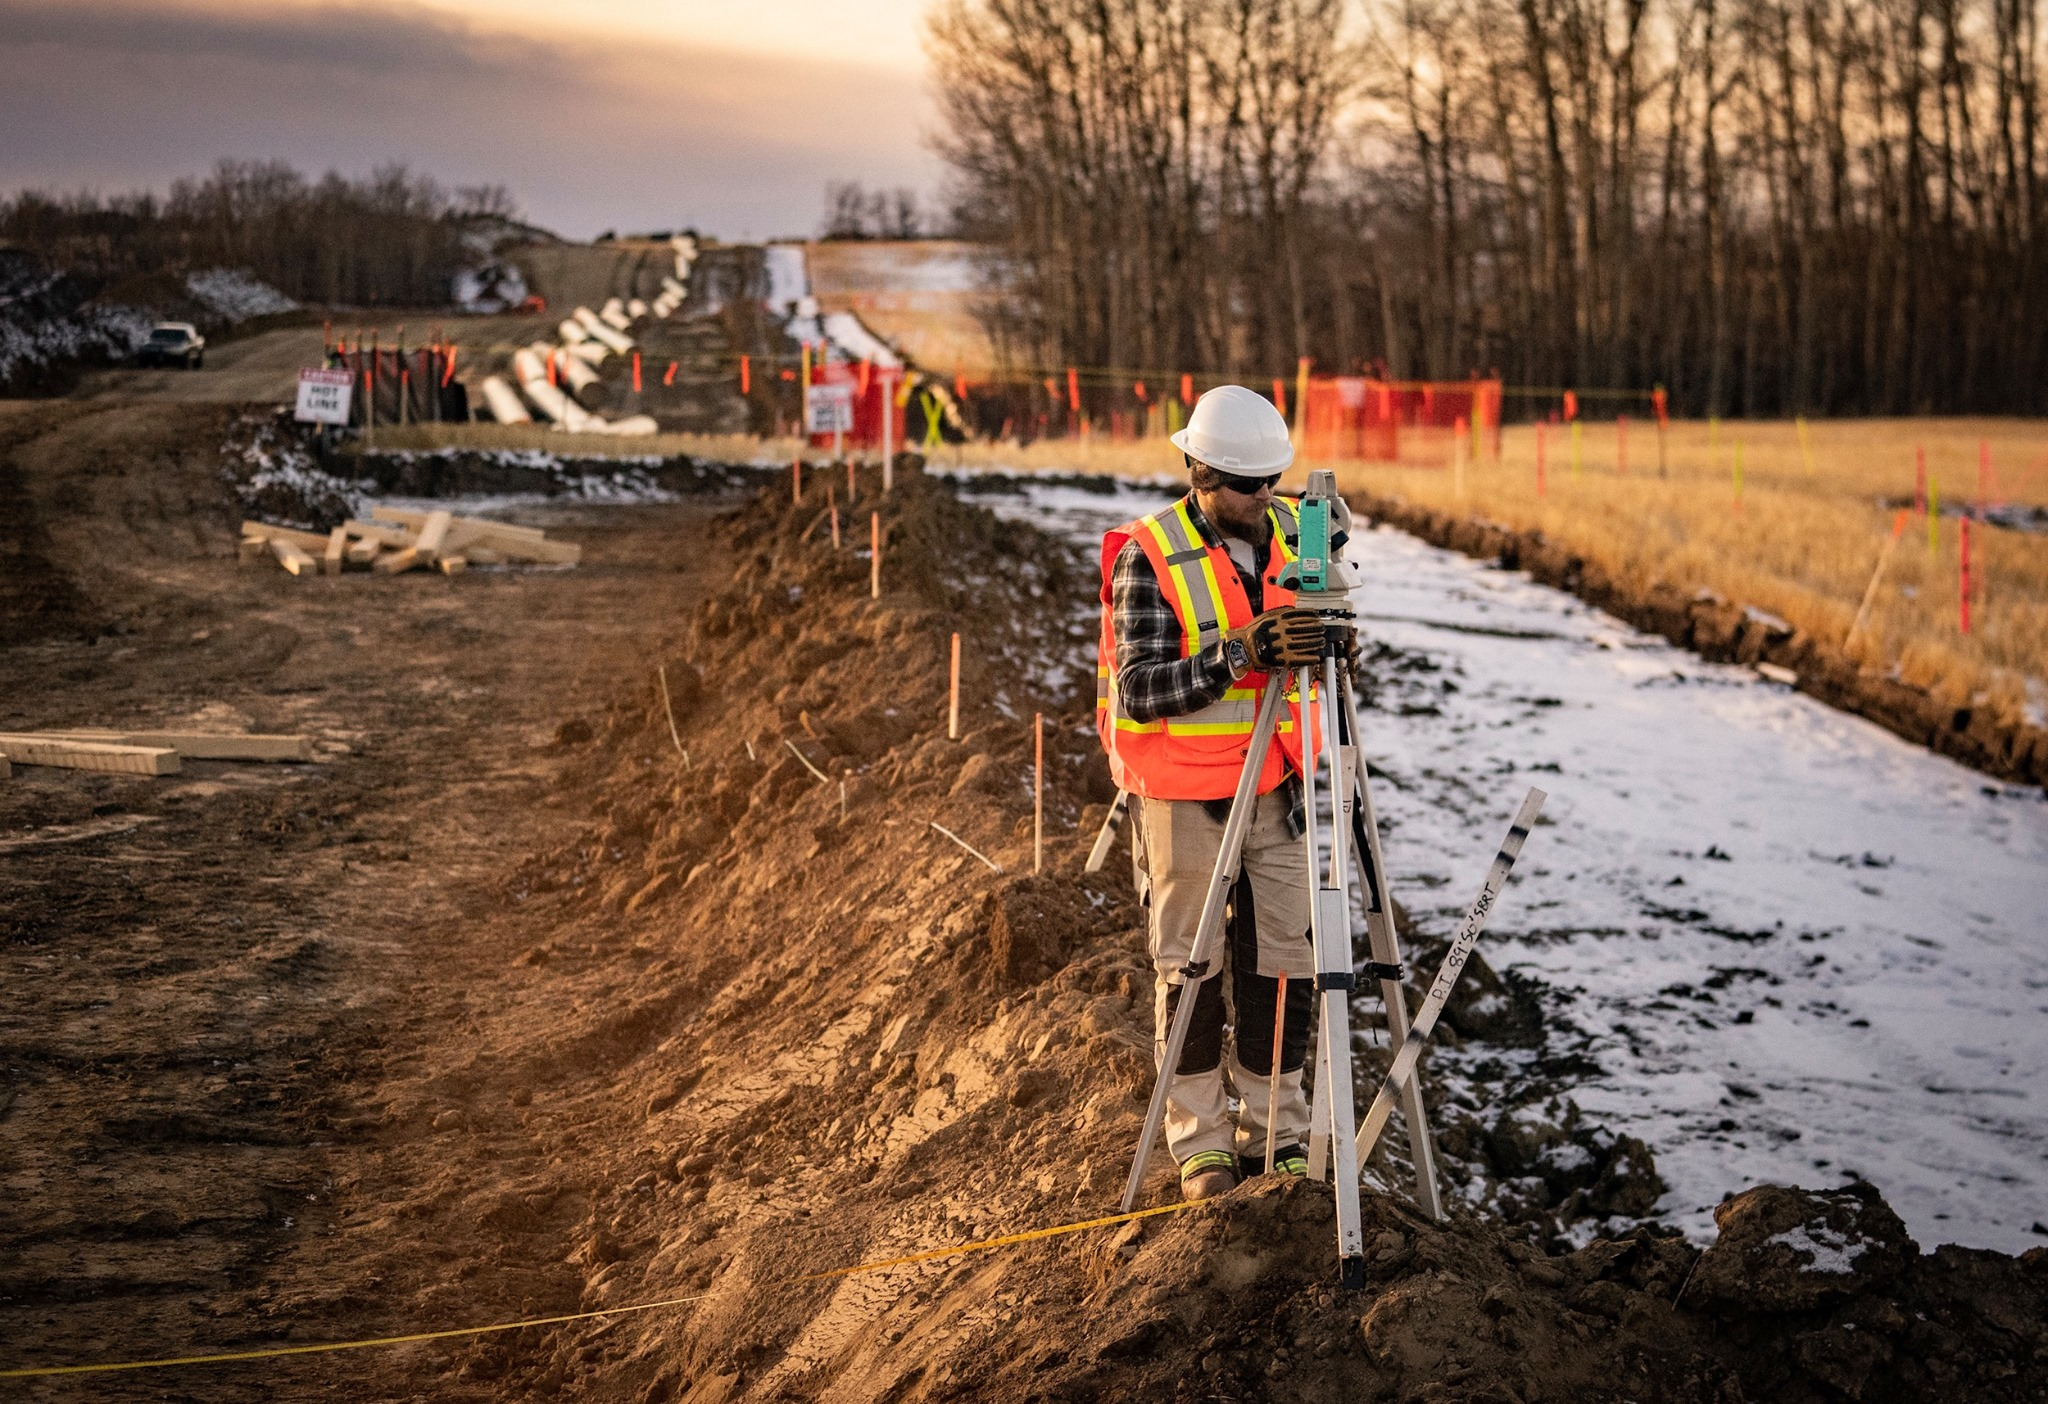 trans mountain expansion construction pipeline in Canada